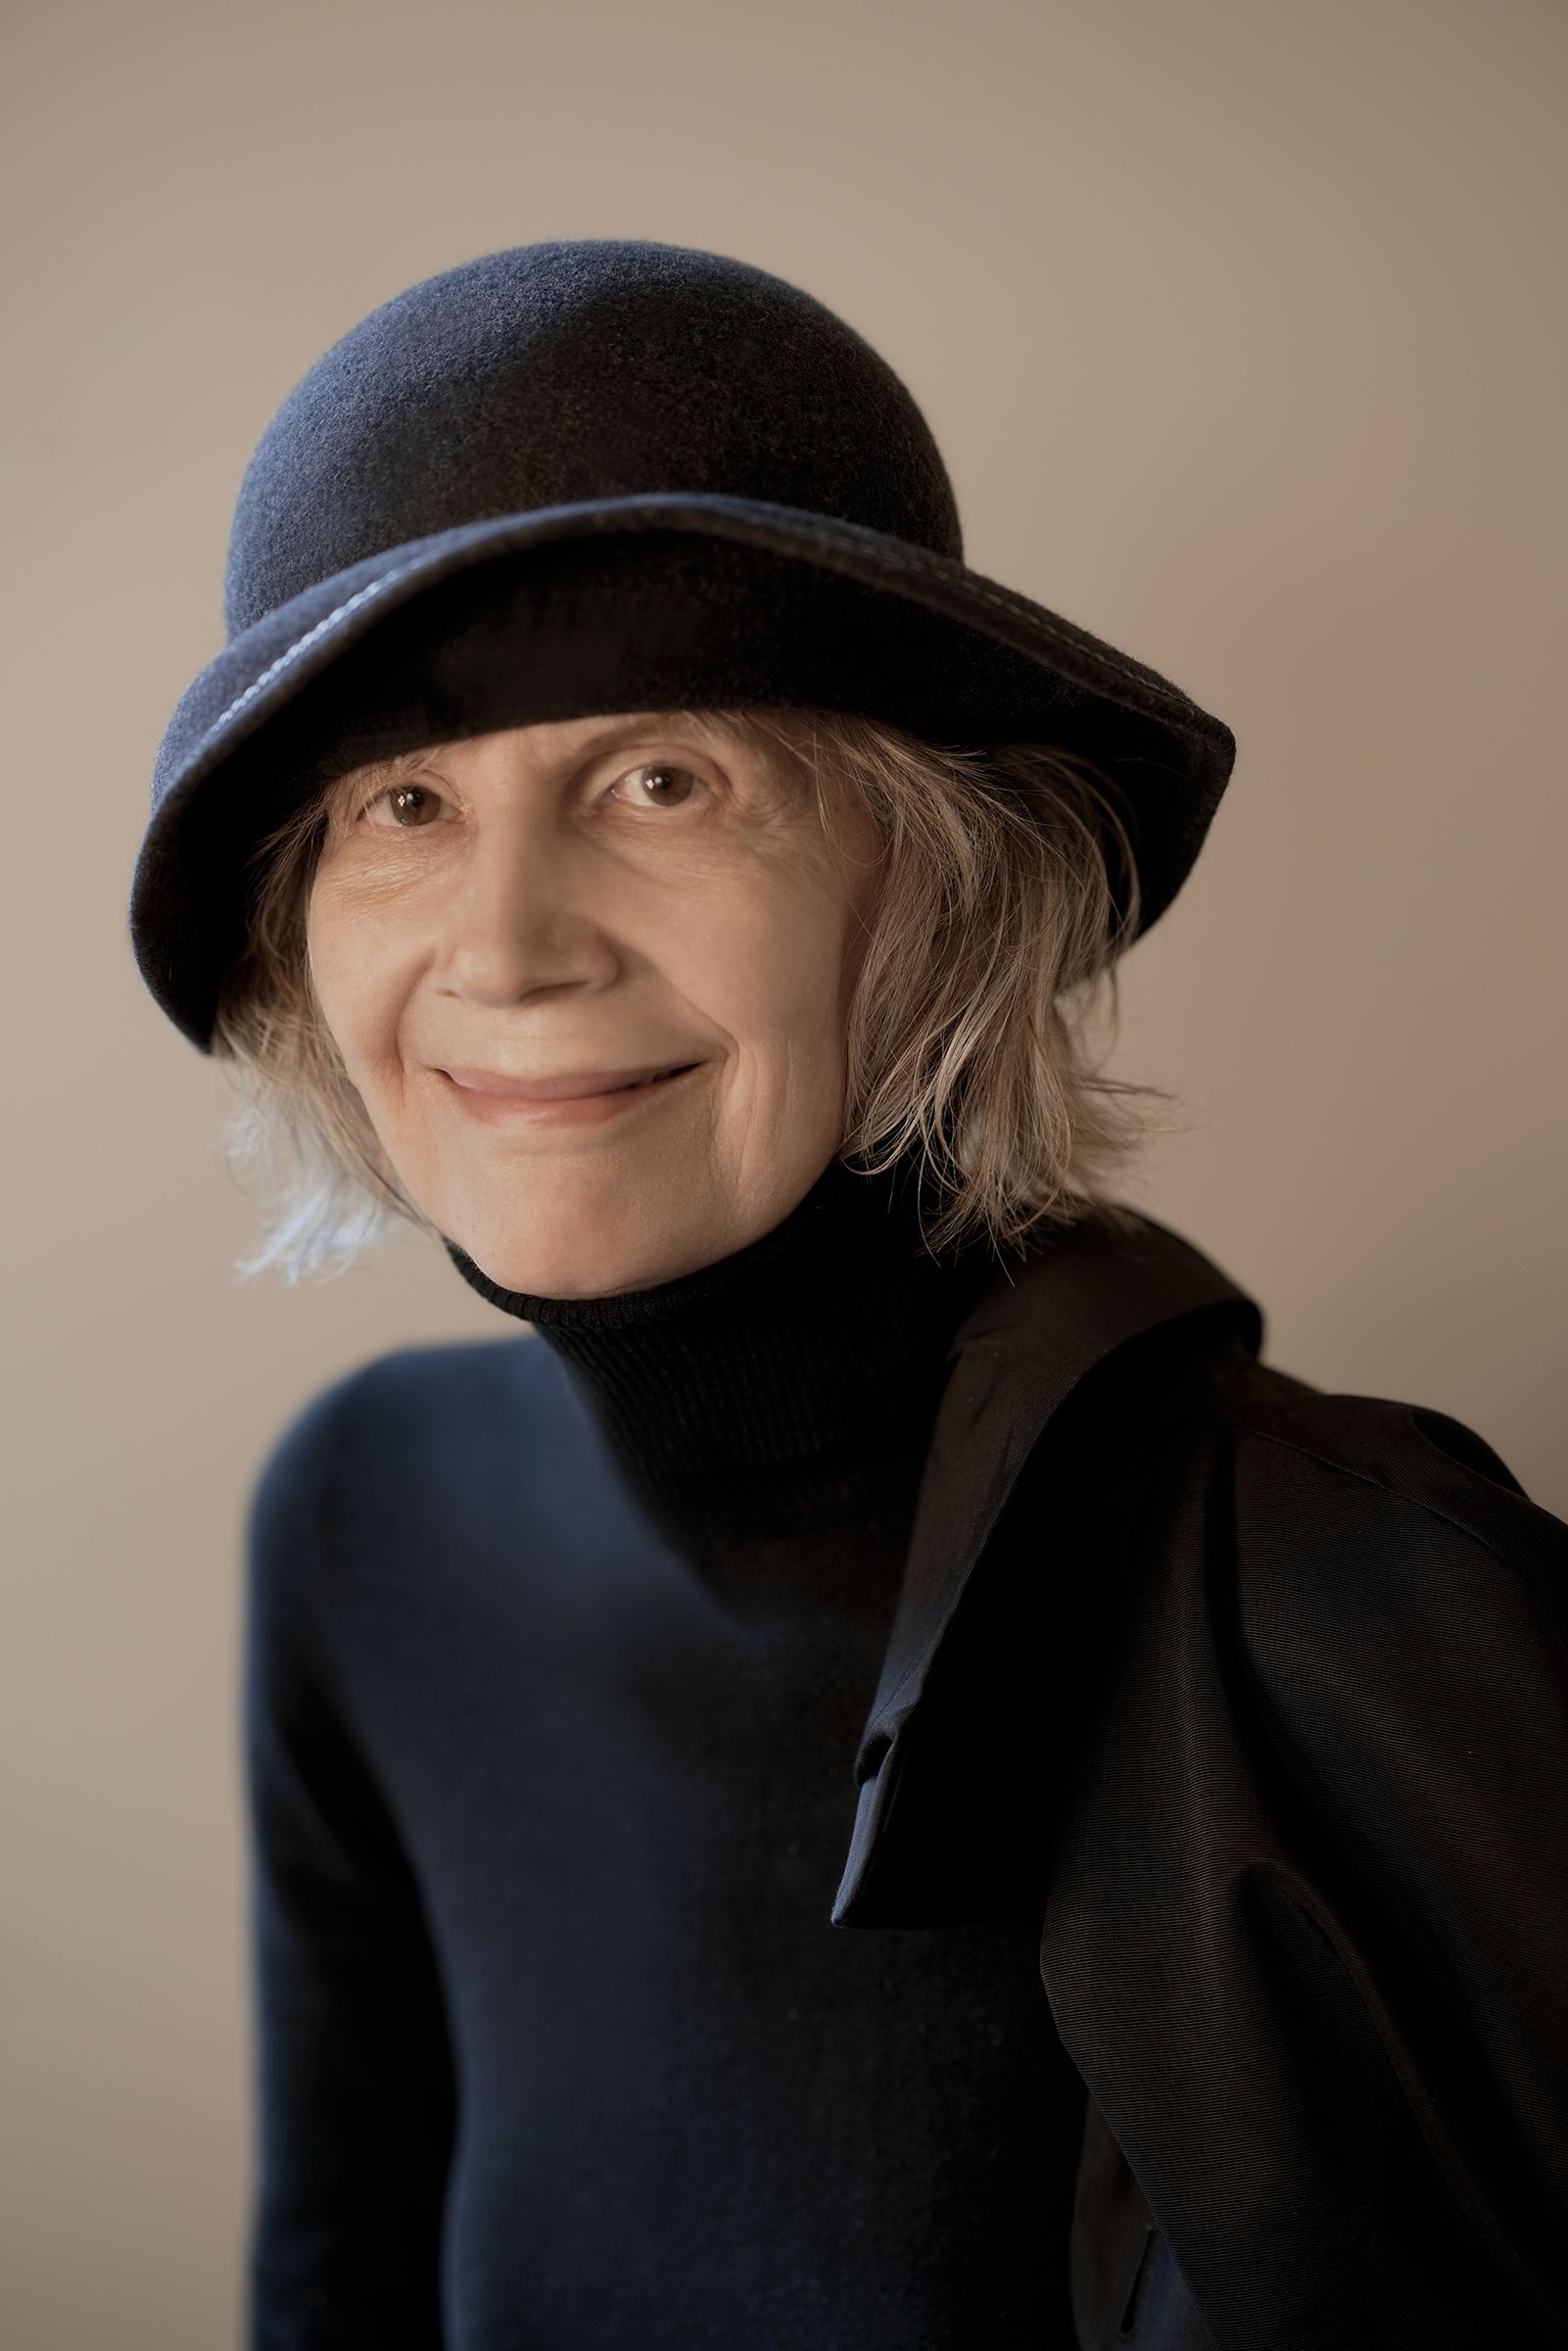 Caption: JoAnne Brackeen, Credit: Carol Friedman